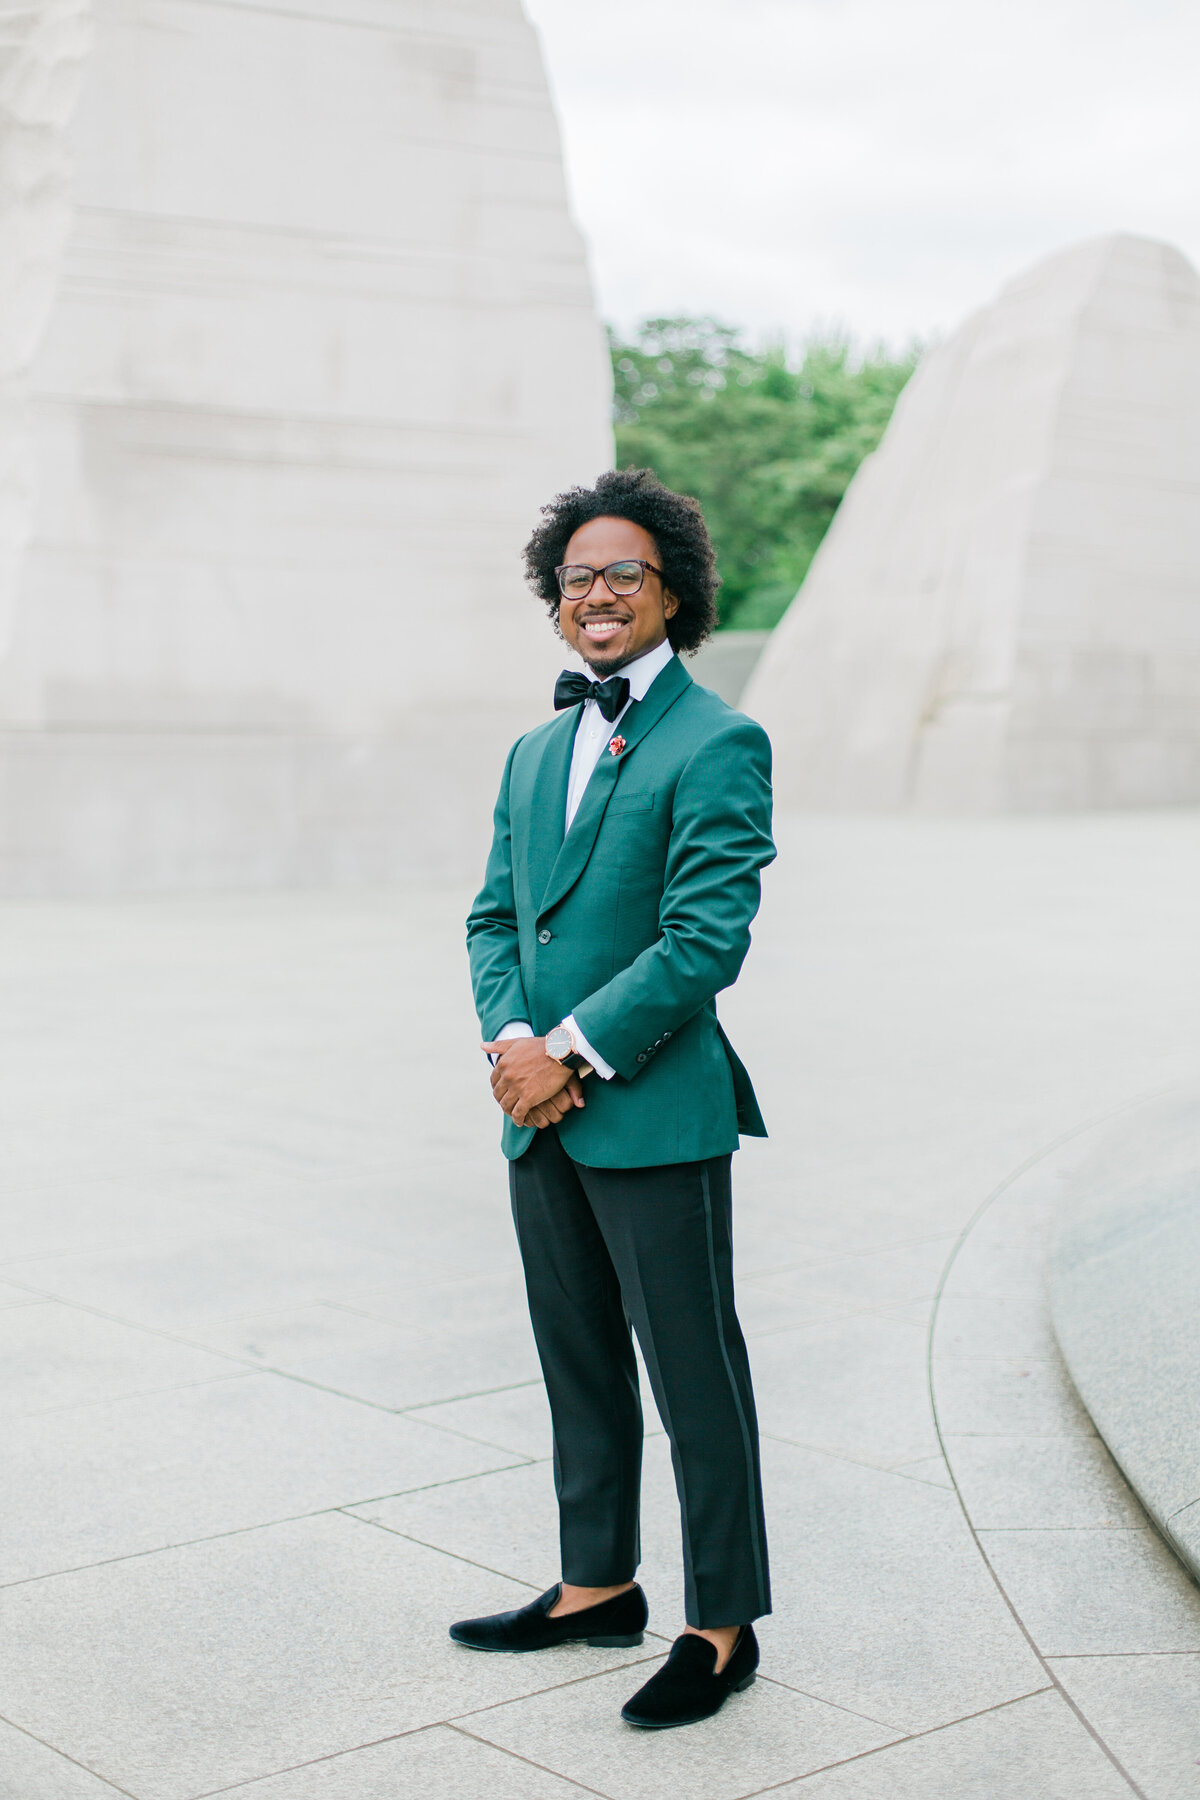 Solomon_Tkeyah_Micro_COVID_Wedding_Washington_DC_War_Memorial_MLK_Memorial_Linoln_Memorial_Angelika_Johns_Photography-8639